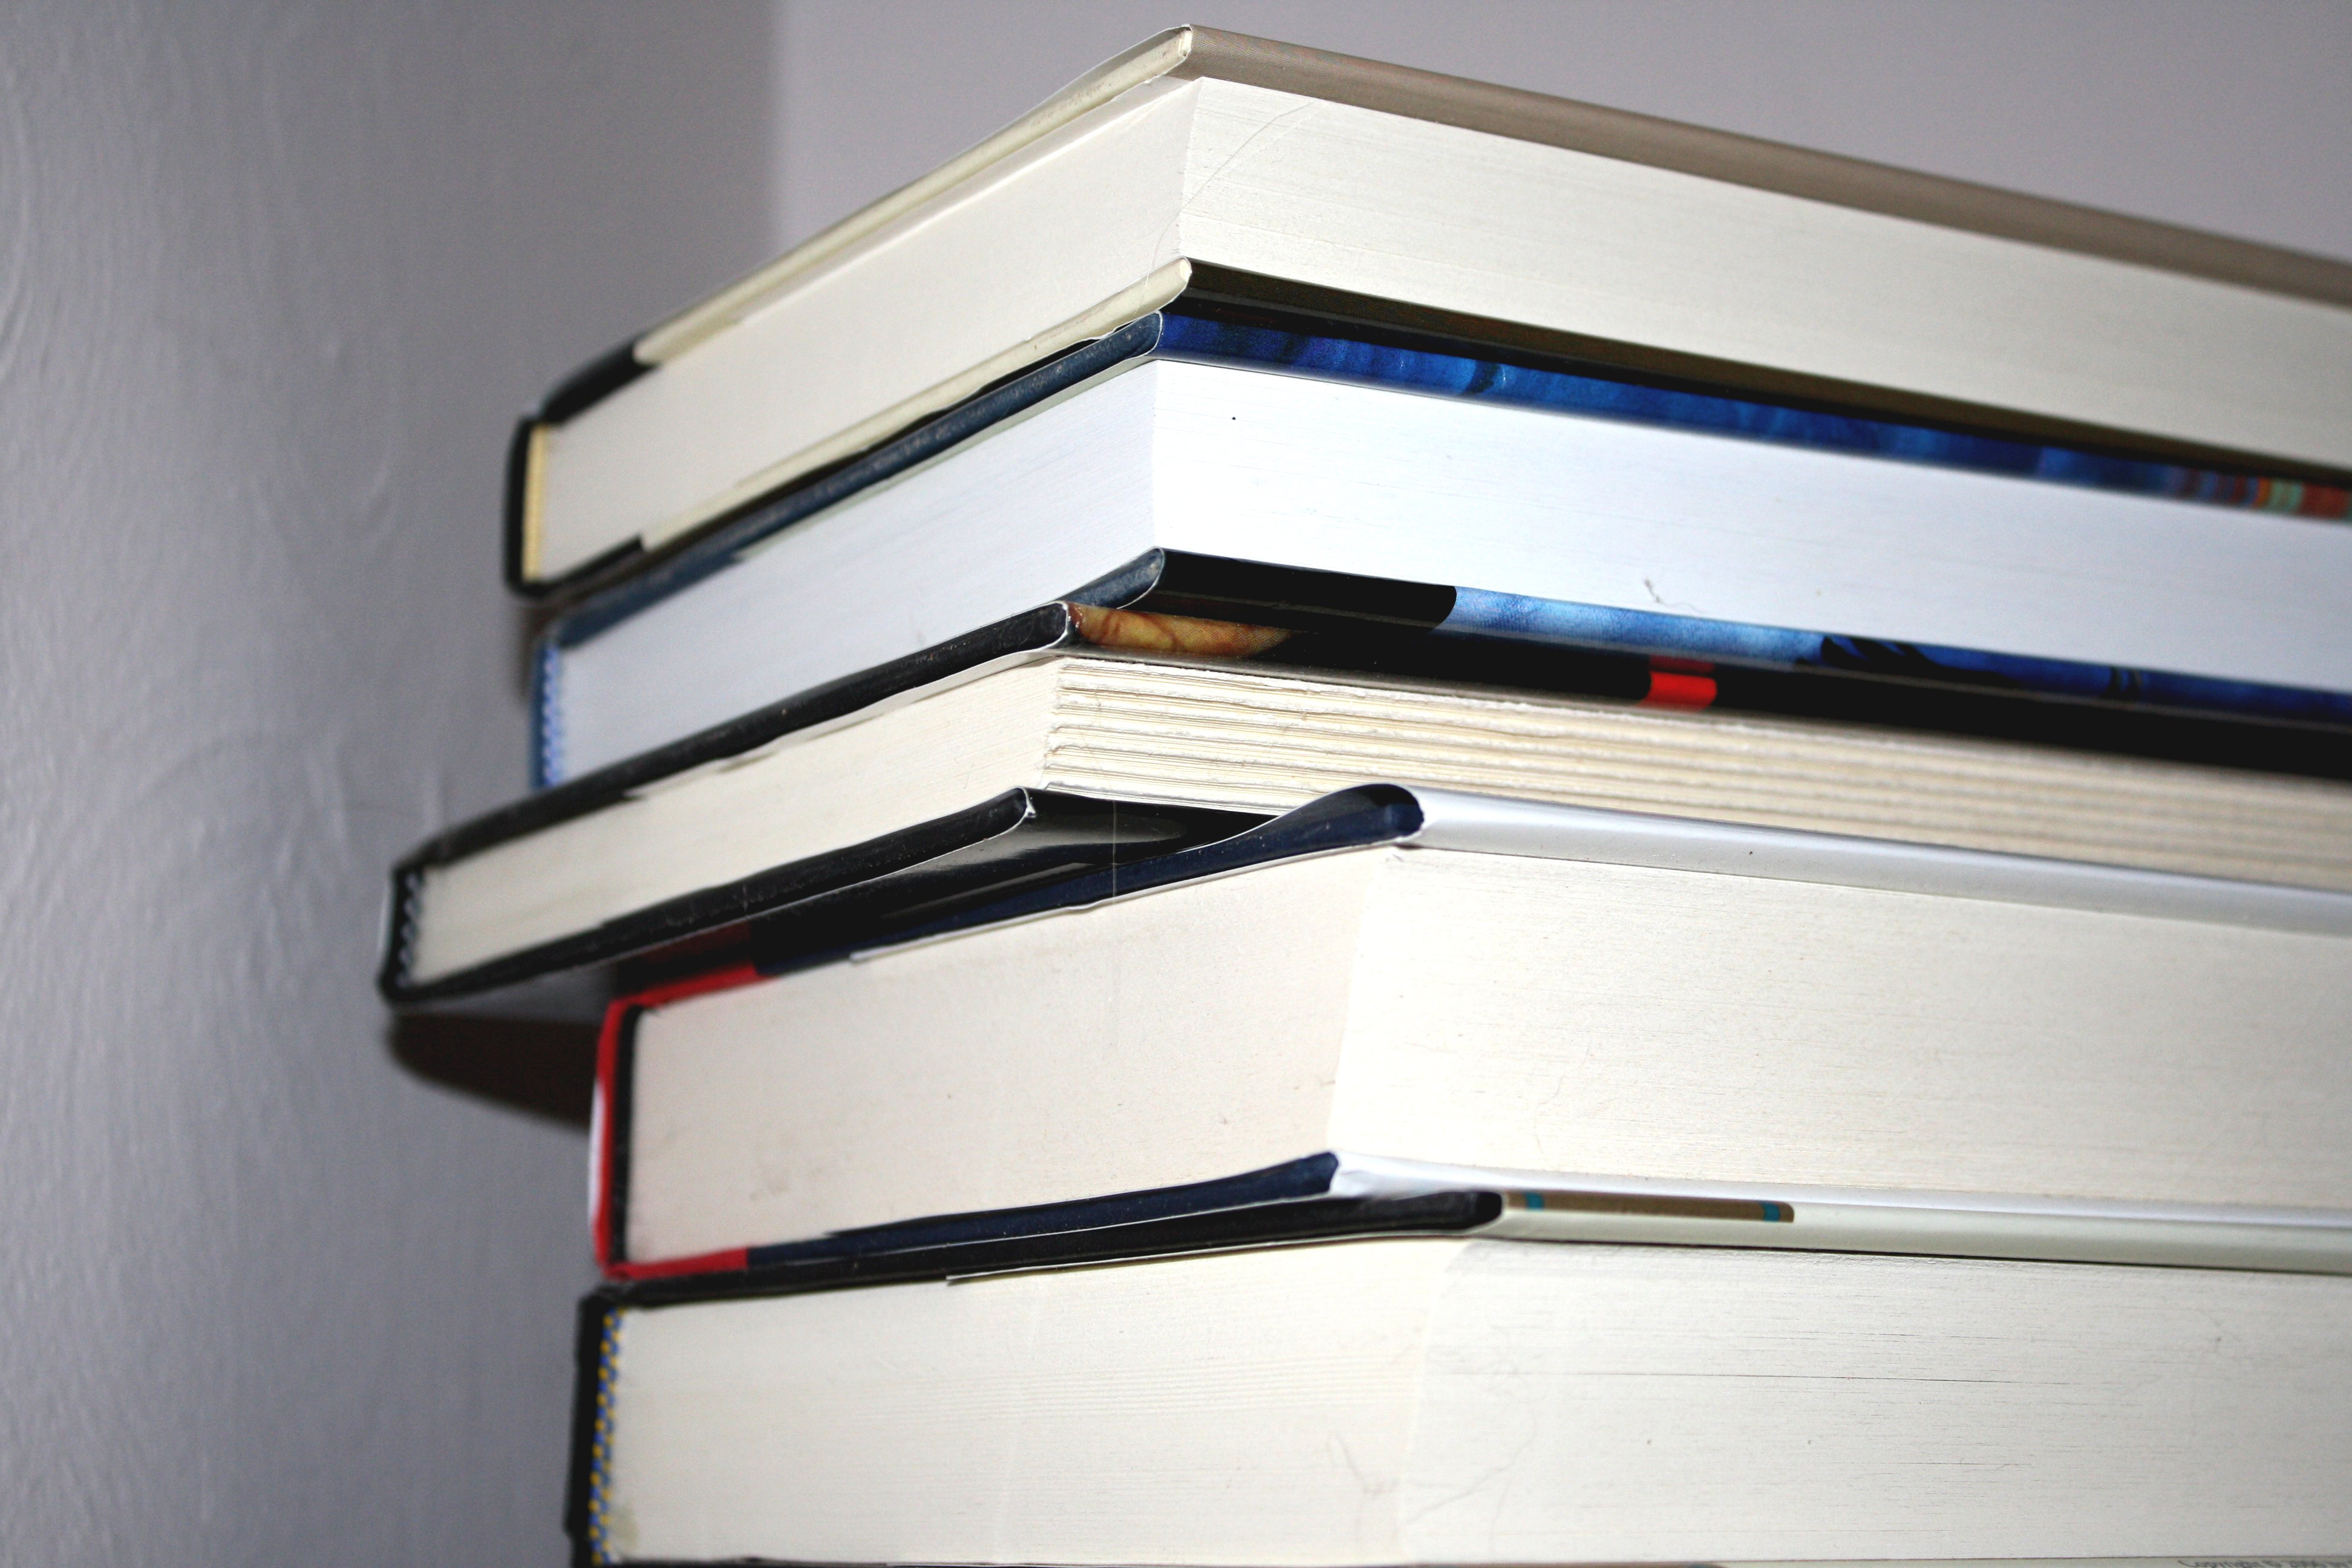 Stack of Books Picture | Free Photograph | Photos Public Domain